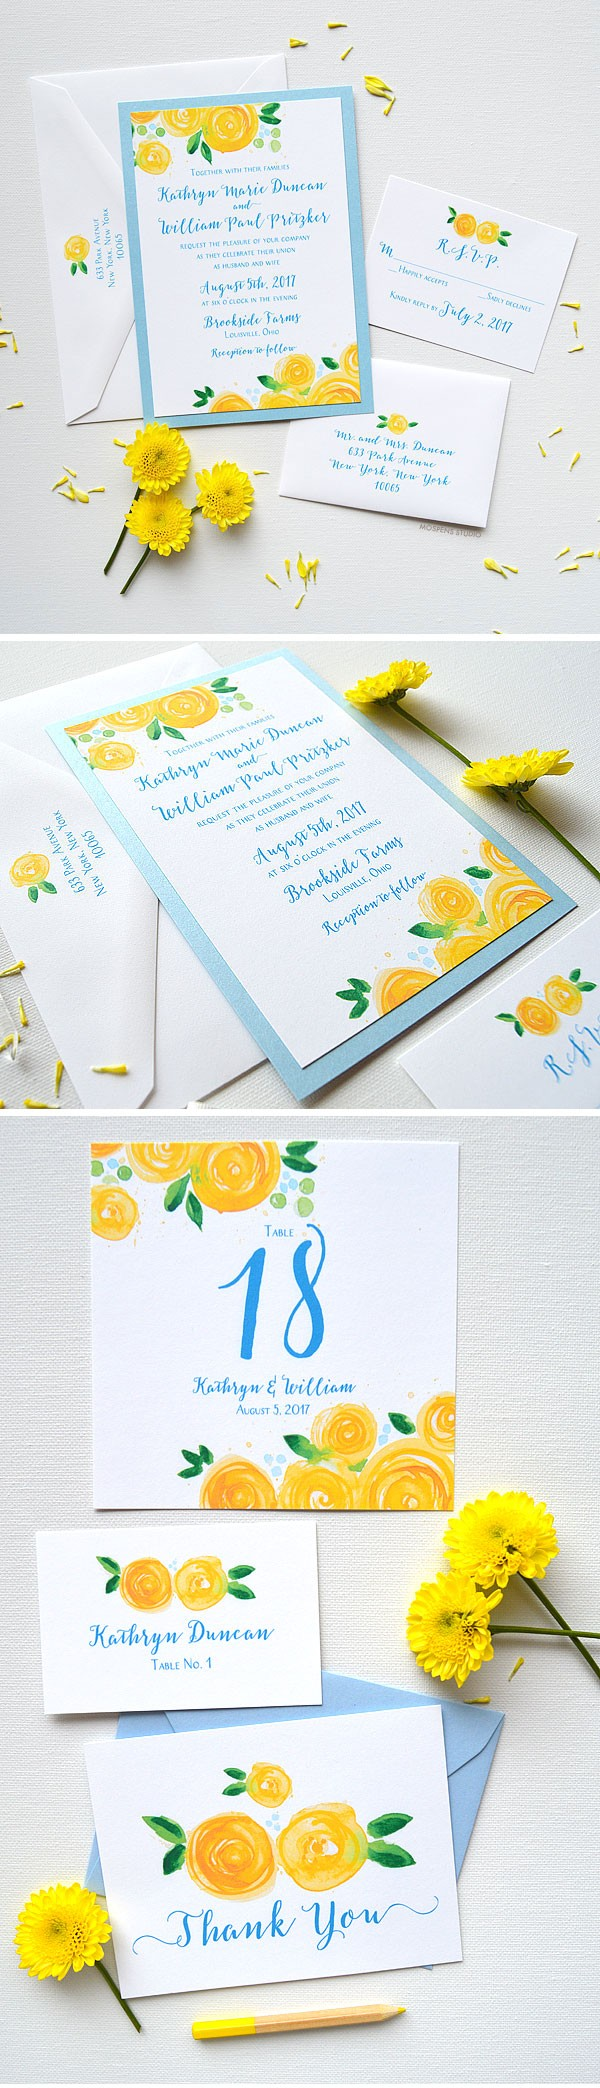 The Yellow Rose Blooms Wedding Invitation design features light blue metallic card layer, original watercolor rose art, and modern fonts in beautiful blue ink. Letterpress and raised ink upgrades available! - www.mospensstudio.com